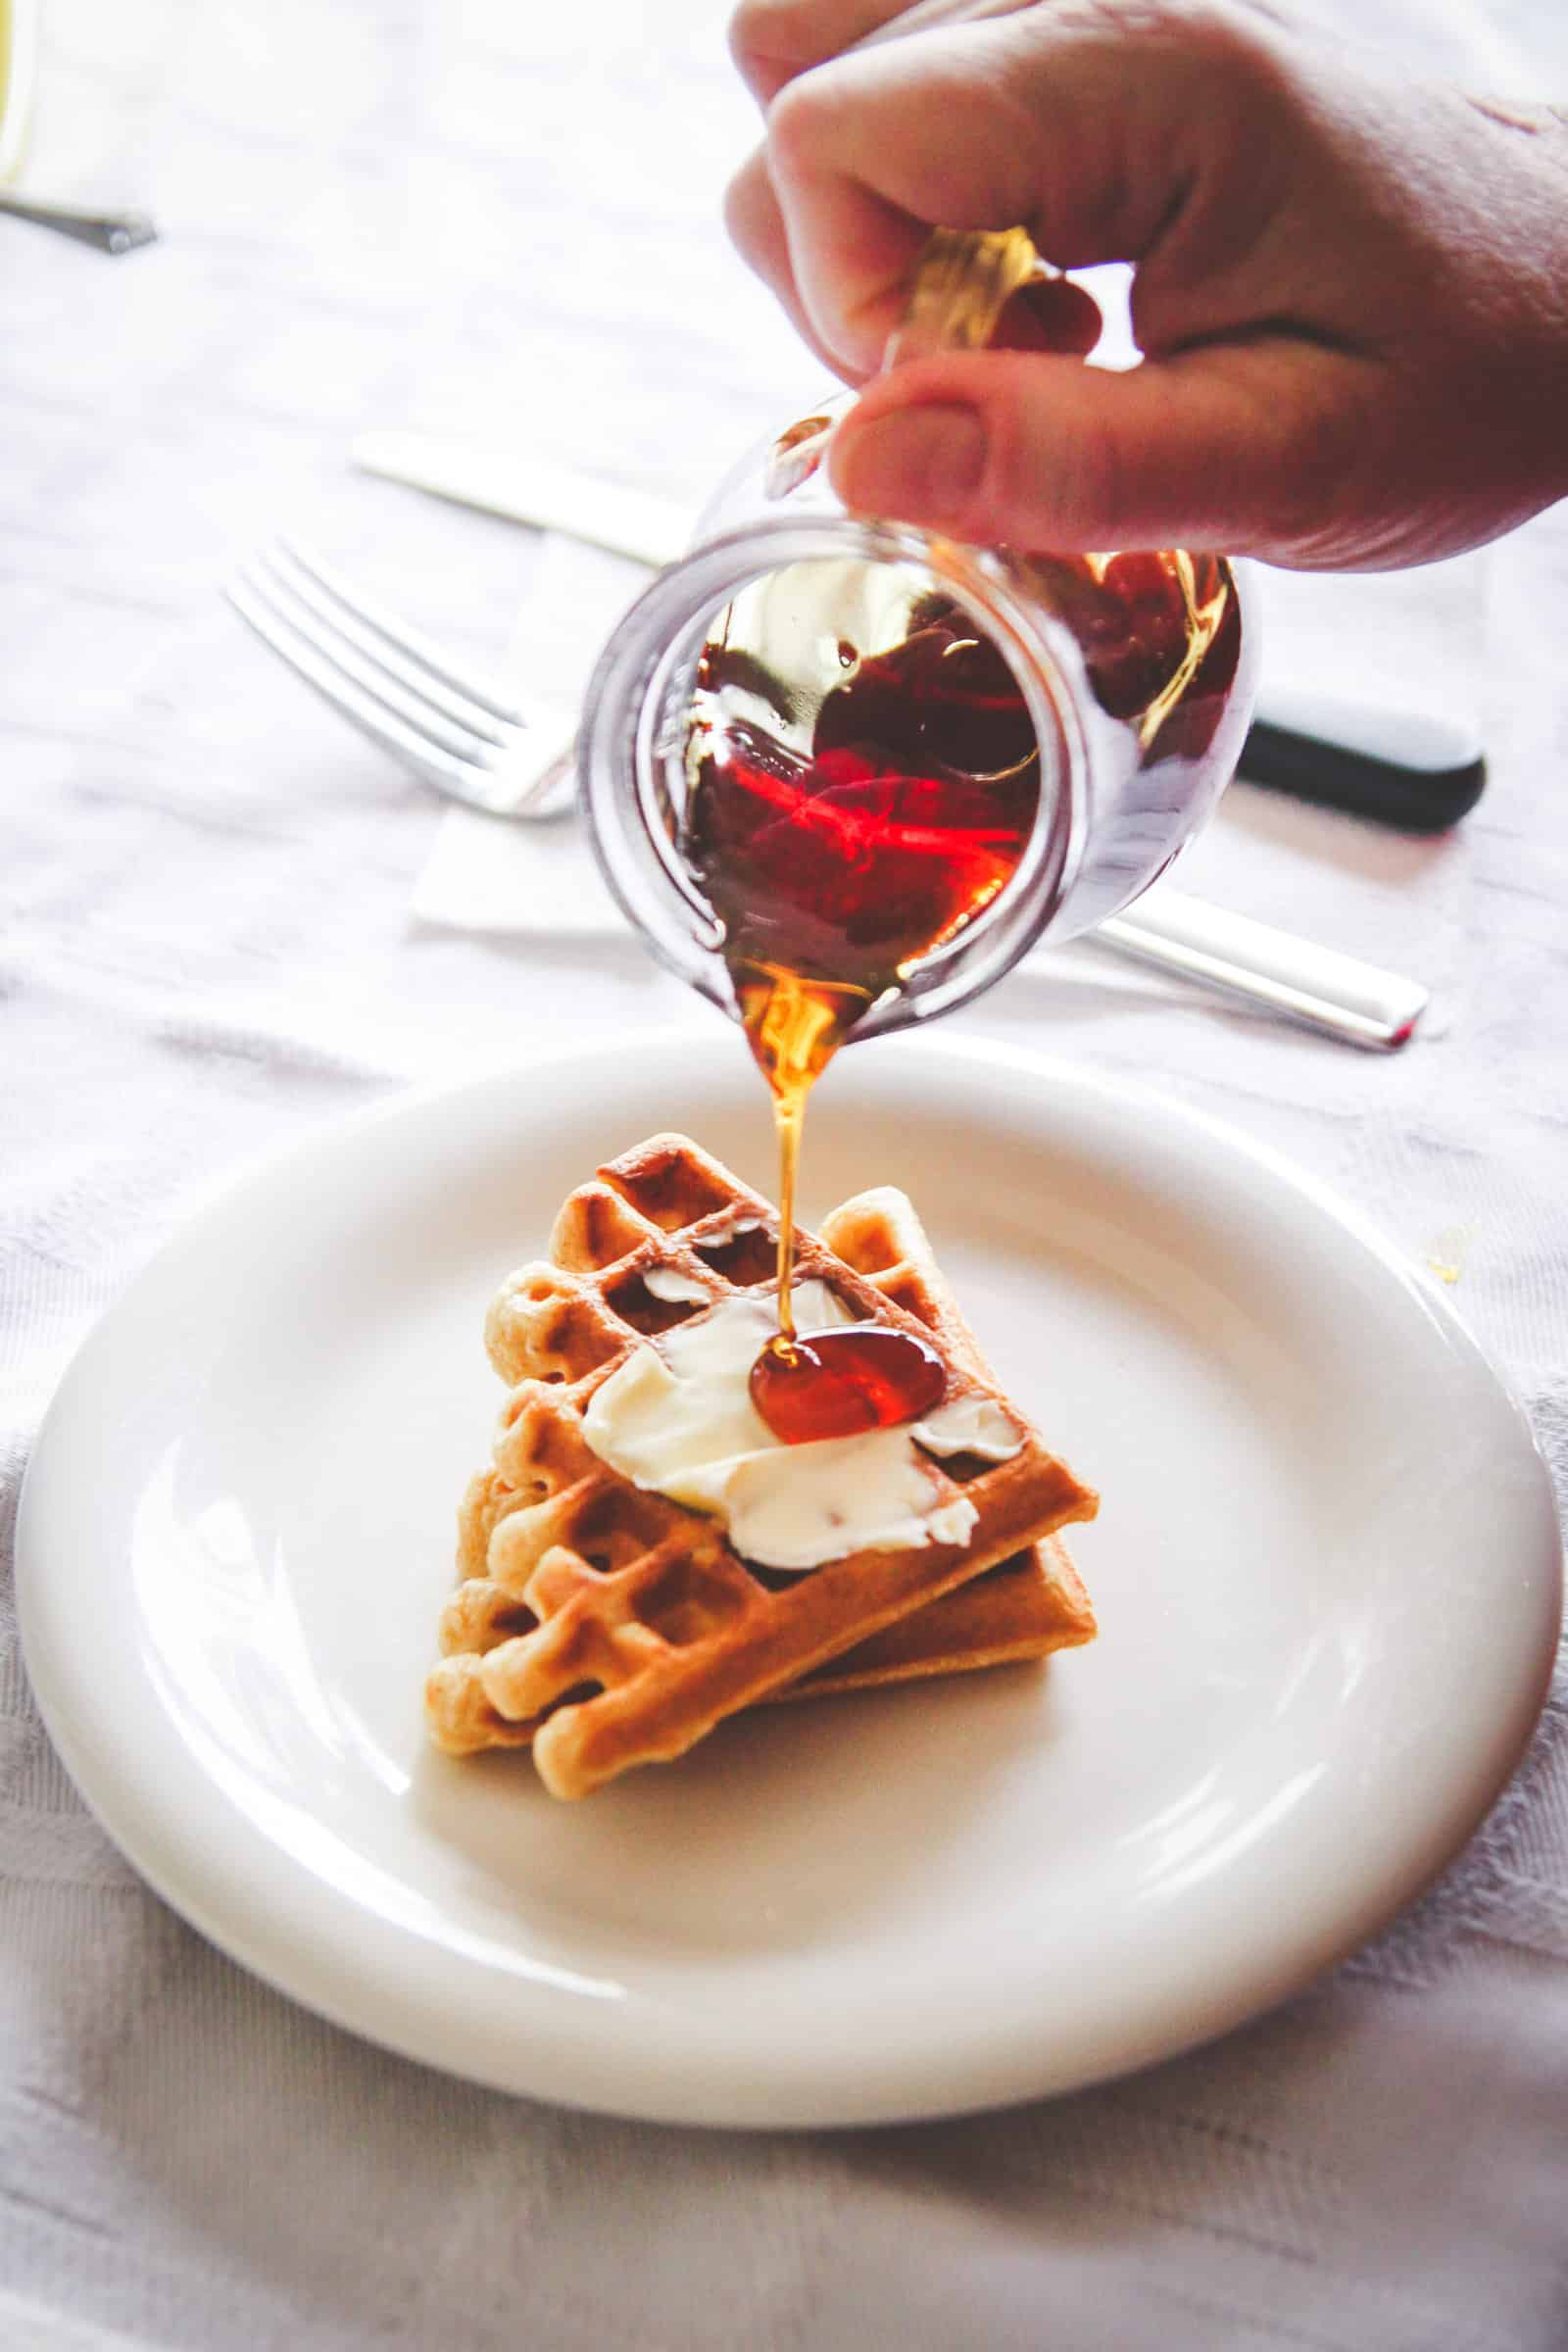 Waffles with butter and maple syrup